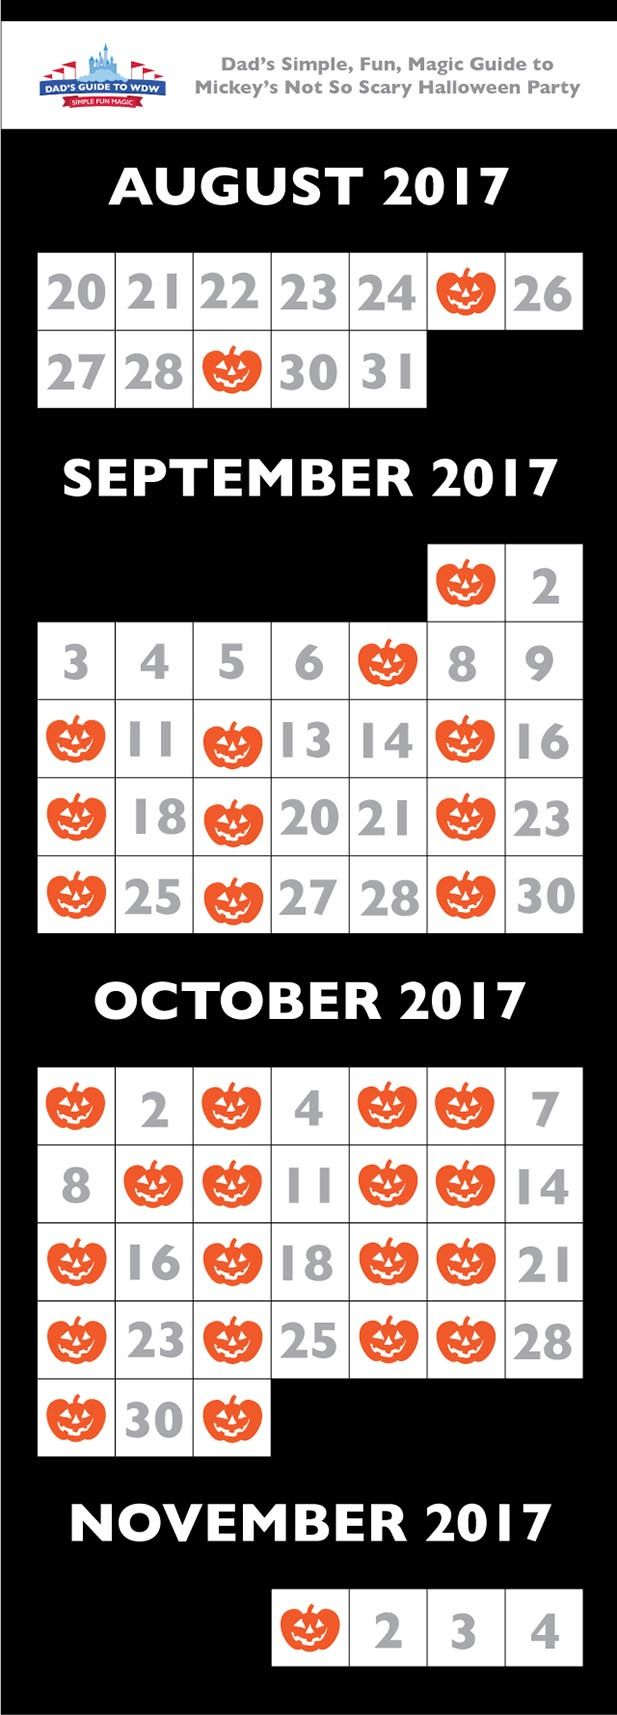 Mickey's Not So Scary Halloween Party Calendar 2017